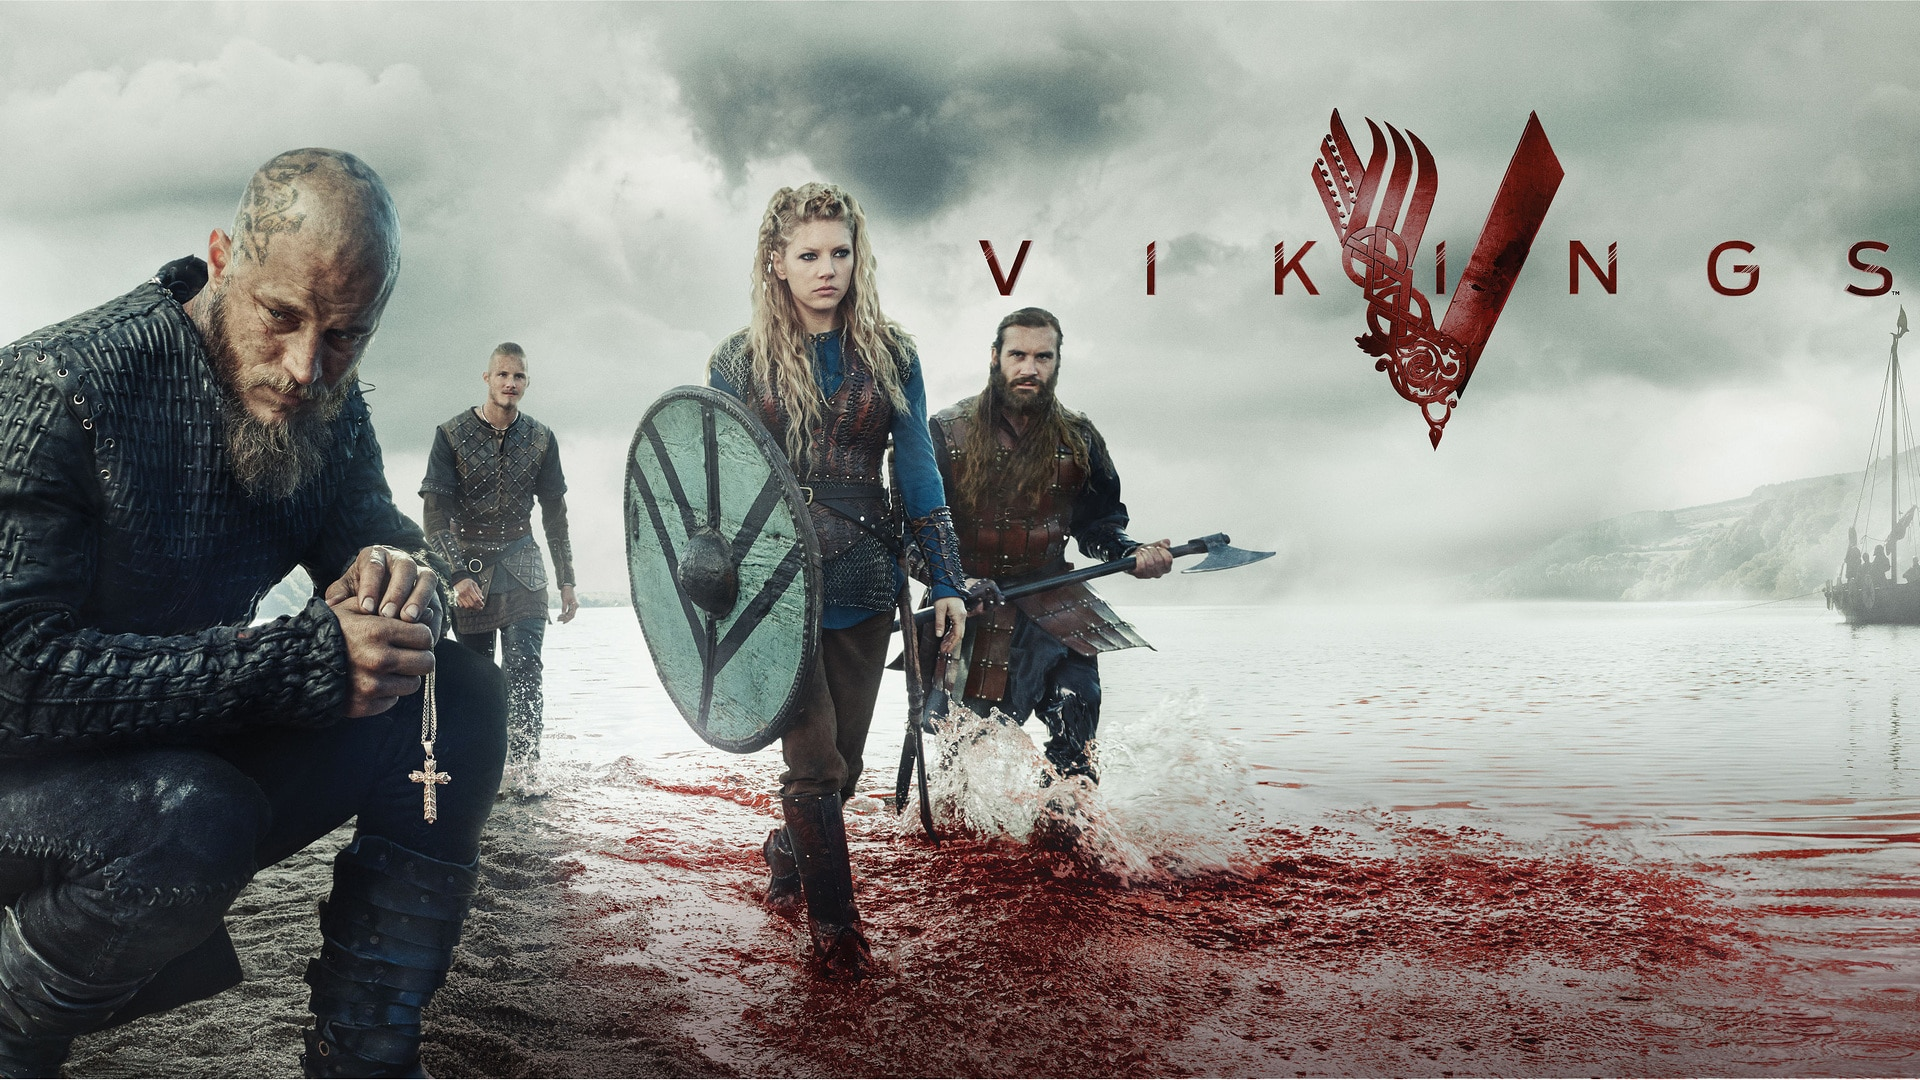 vikings civilized Vikings were called 'norsemen' by the english monks they terrorised society gender roles fight to civilised or uncivilised where did they come from justice system social structure early feminists.